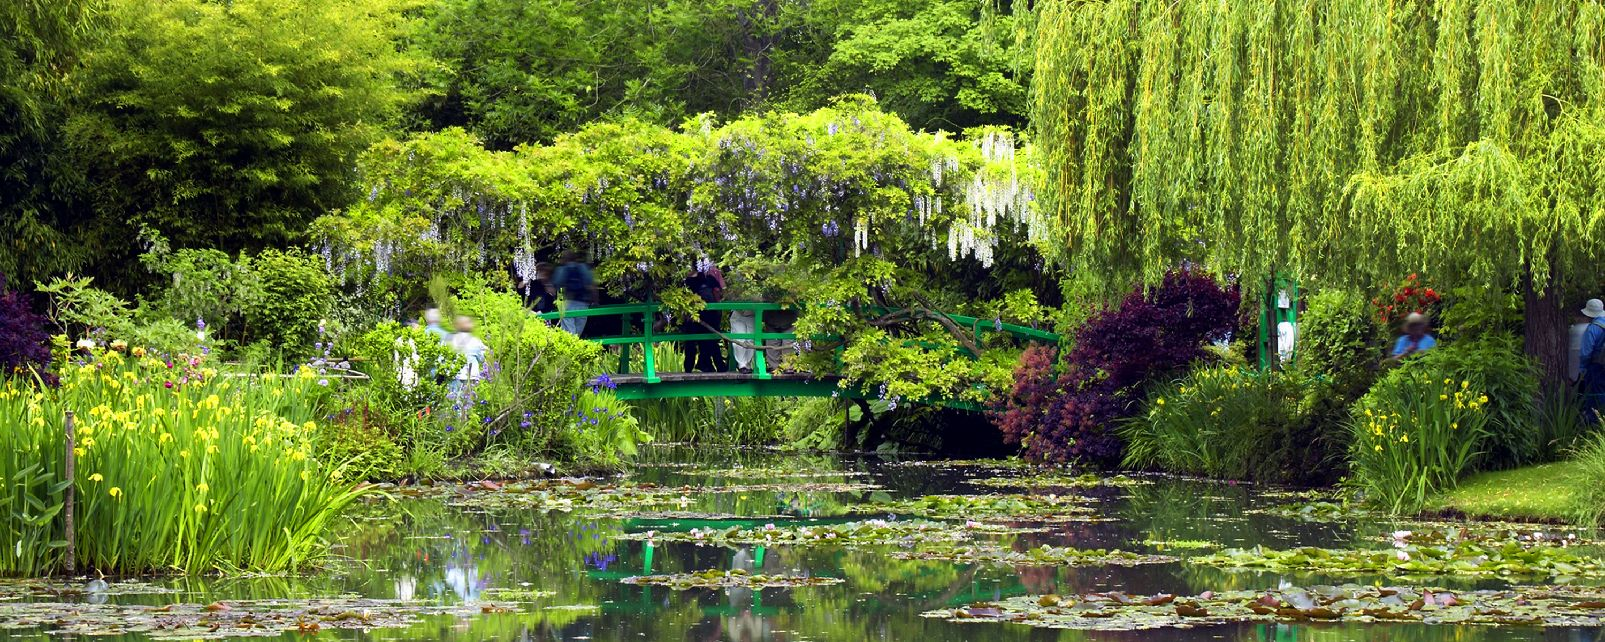 Les jardins de giverny normandie france for Les jardins en france